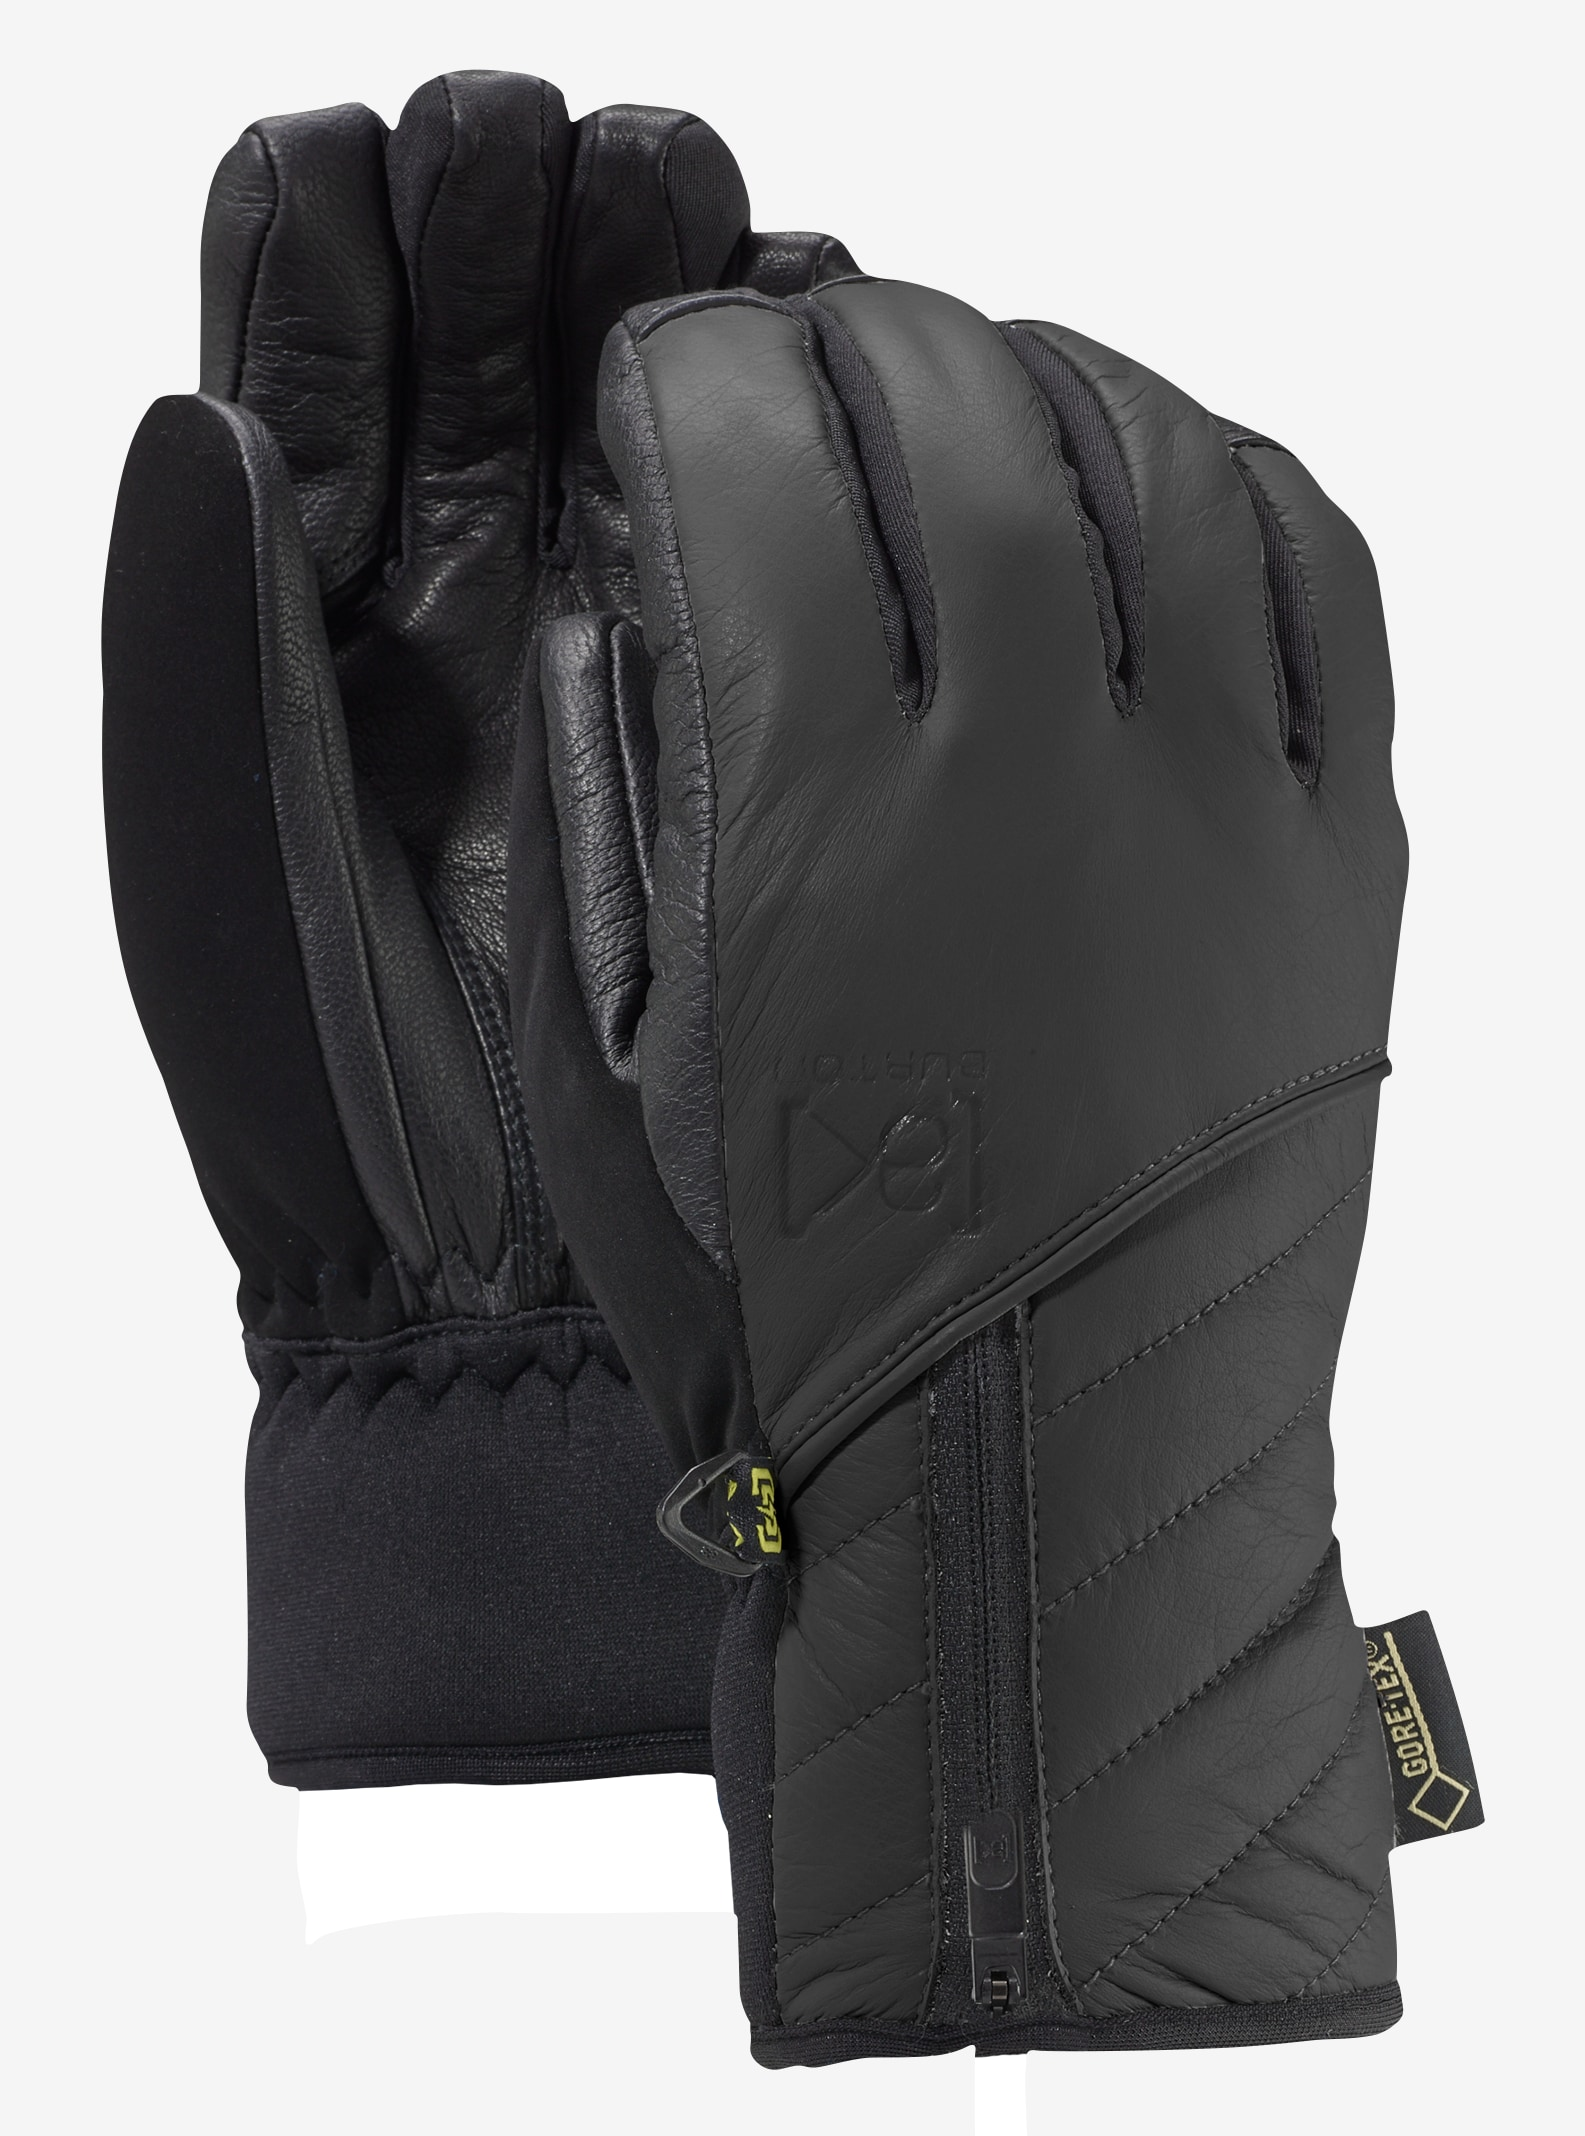 Women's Burton [ak] GORE‑TEX® Guide Glove shown in True Black